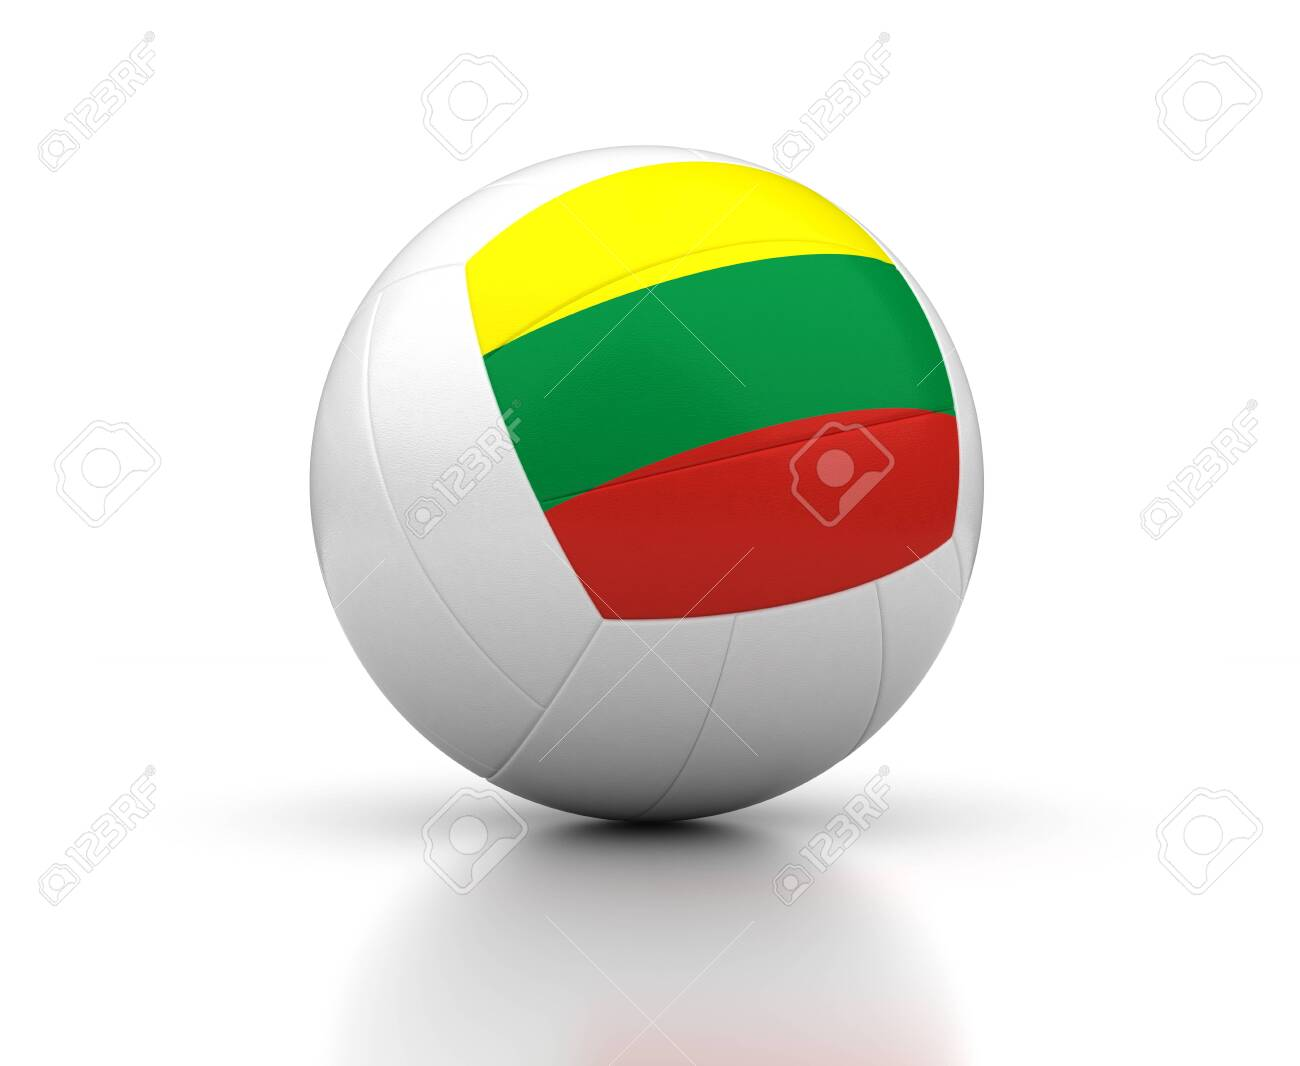 Lithuania Volleyball Team - 142619530